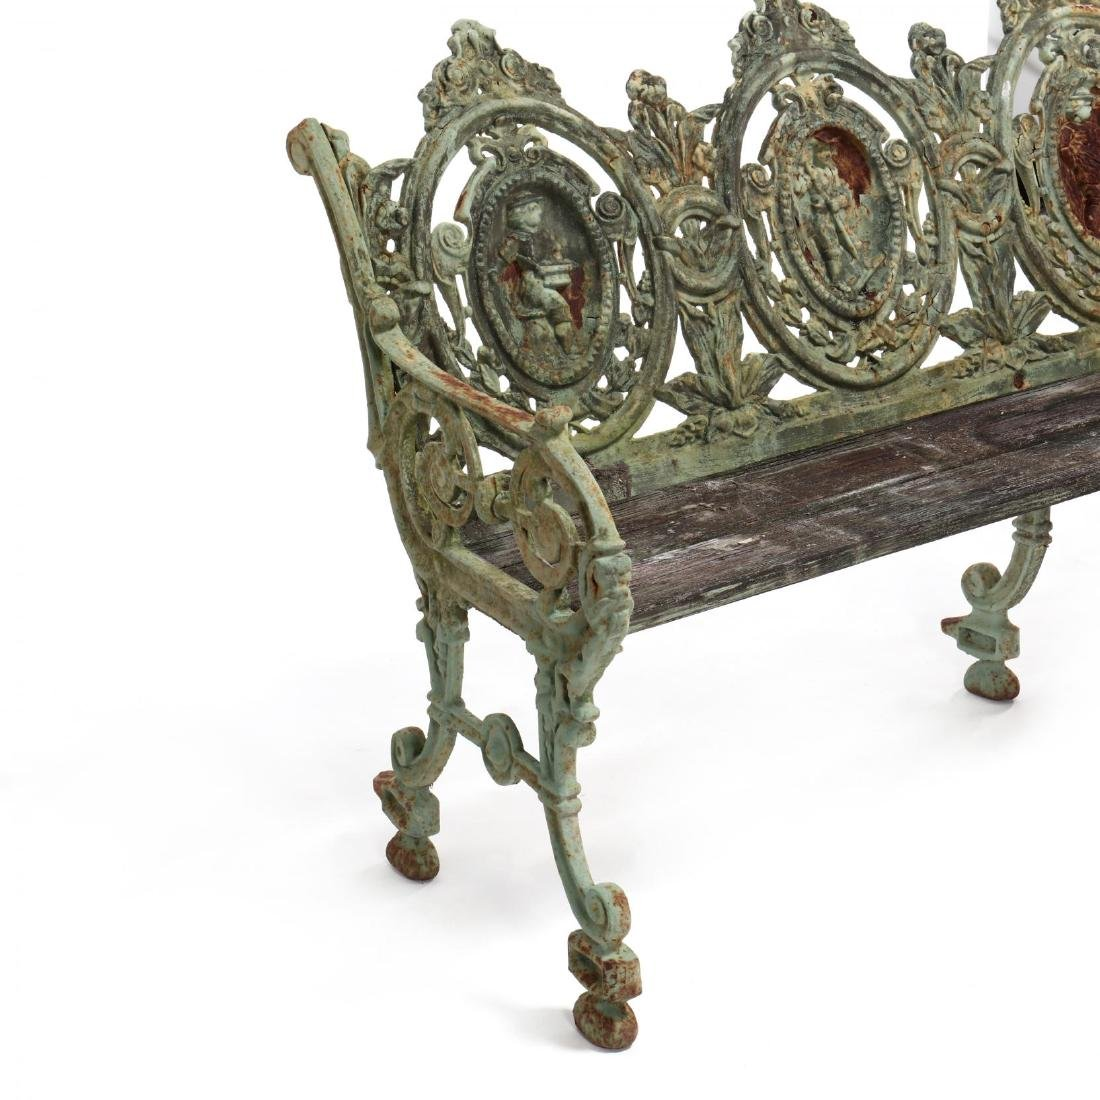 Pair of Renaissance Revival Cast Iron Garden Benches - 6